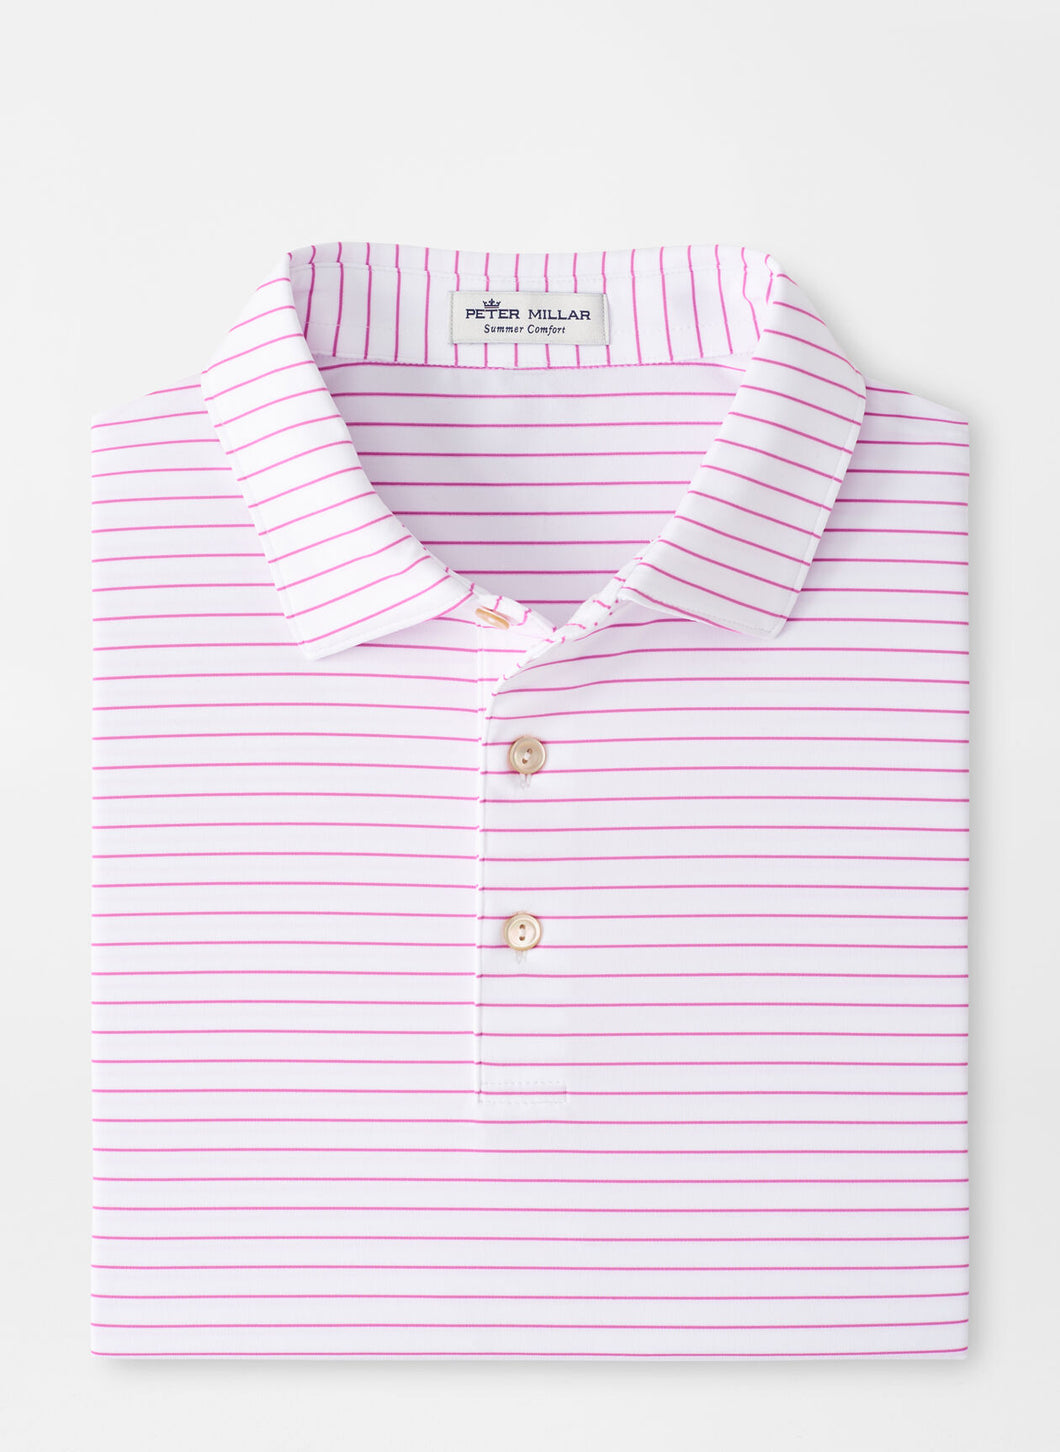 Peter Millar Crafty Stripe Performance Polo in White/Guava Pink